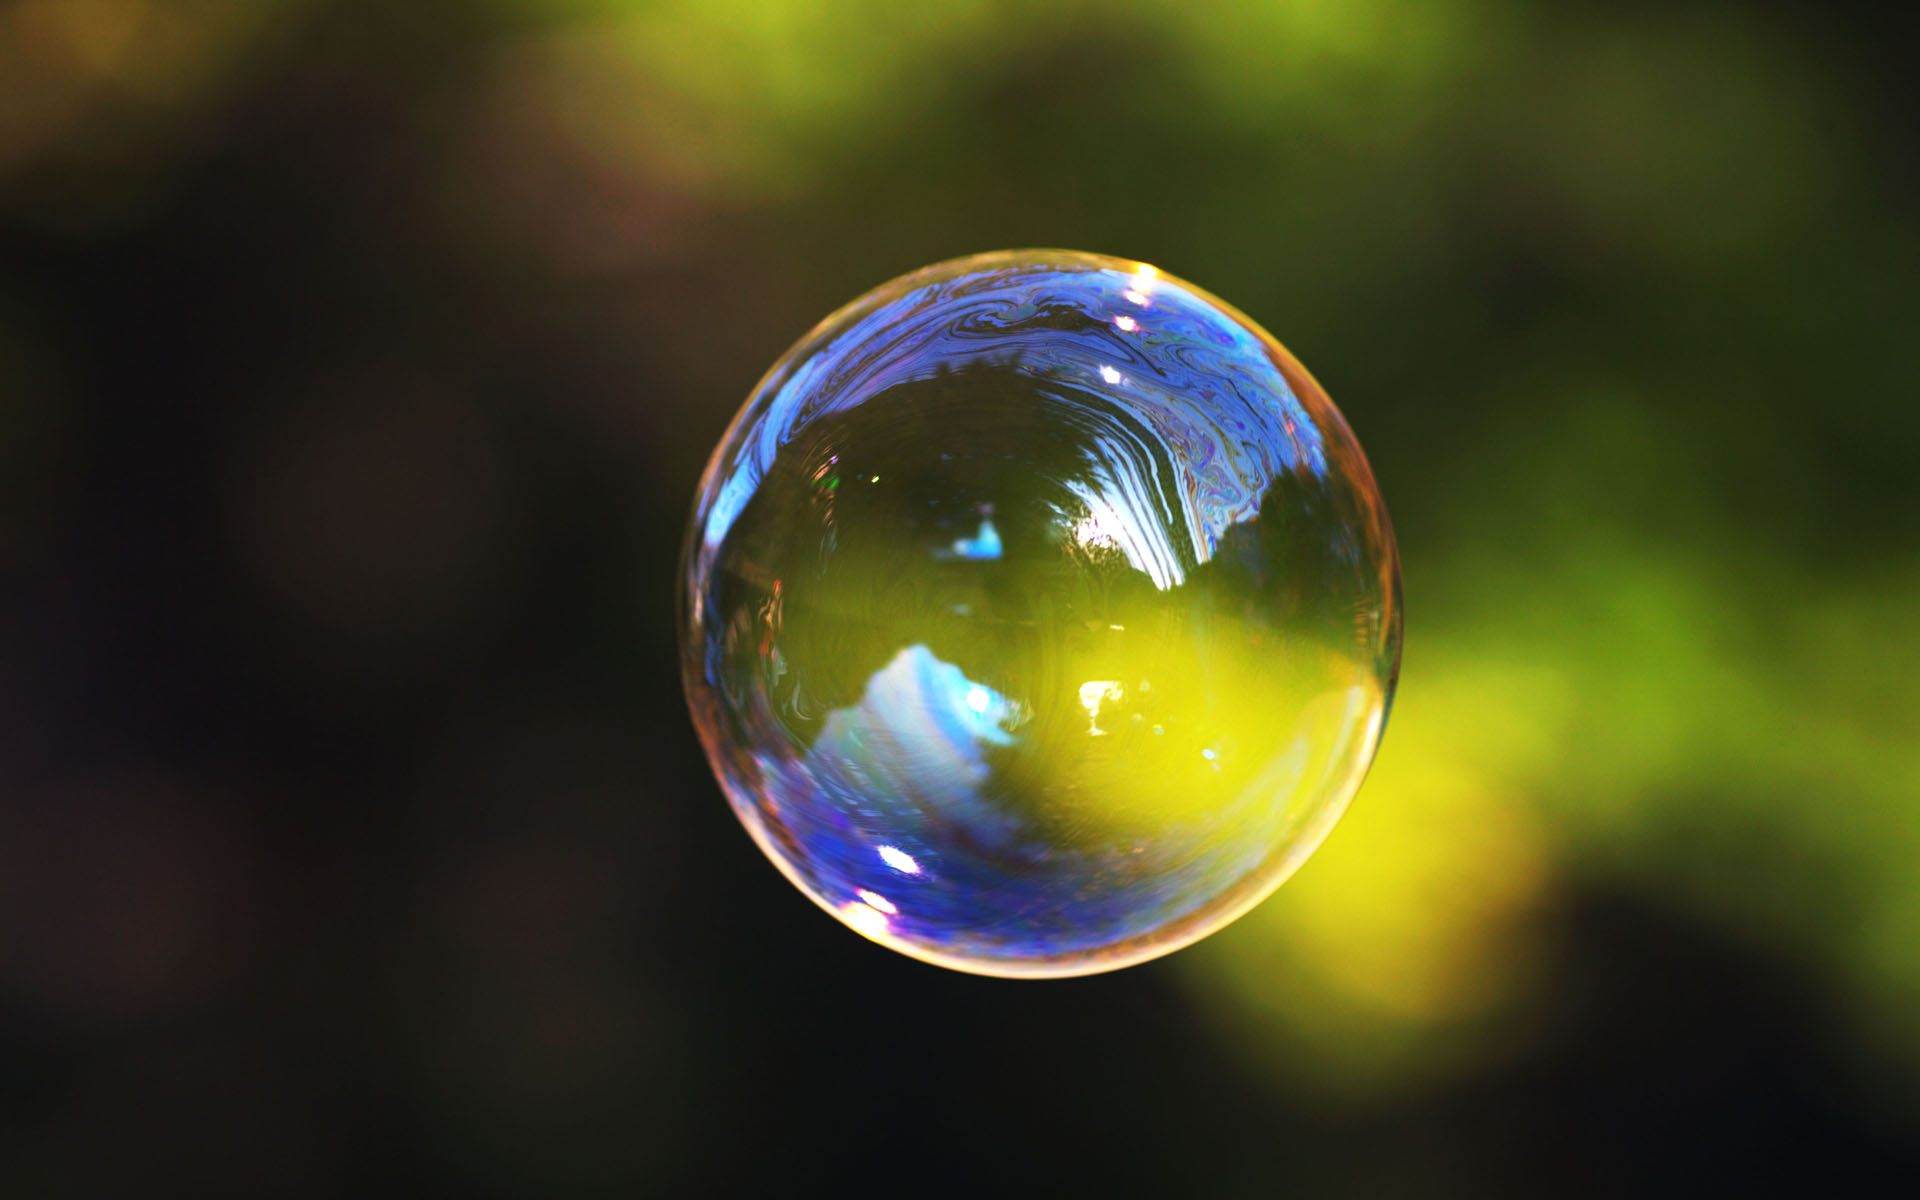 Single Soap Bubble In The Air